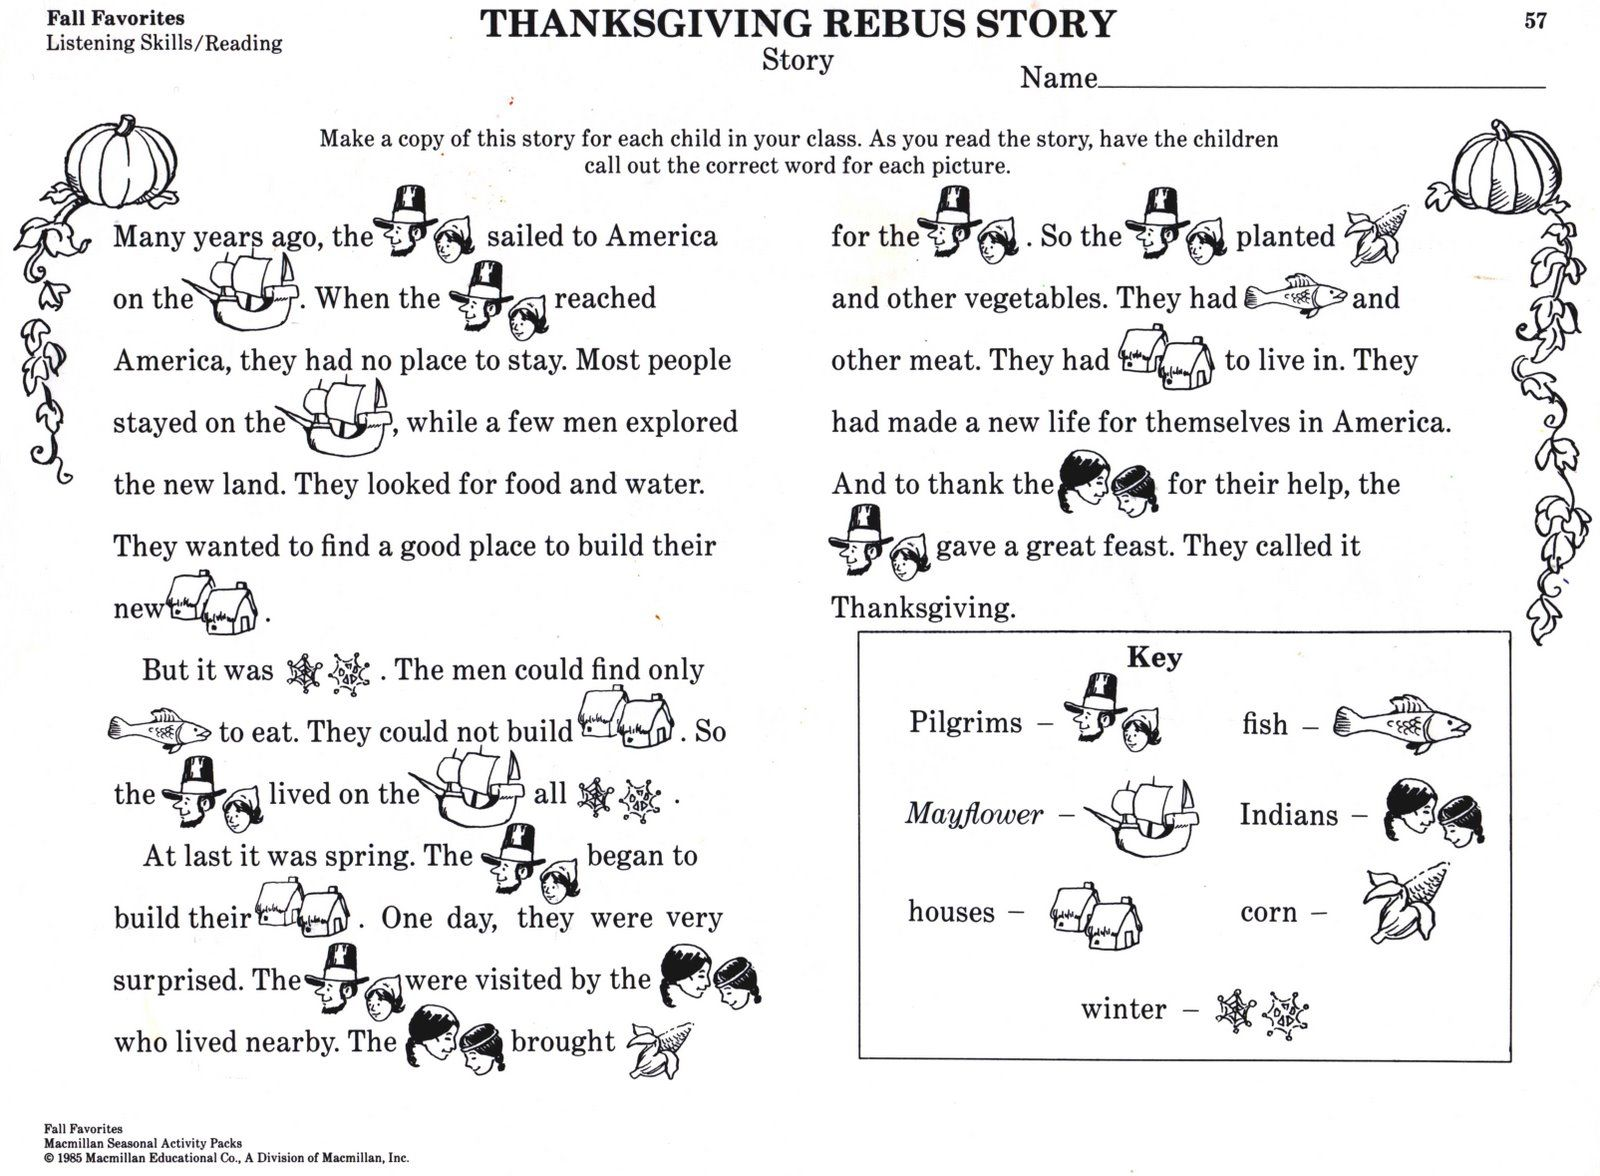 Thanksgiving Rebus story Simple explanation of Thanksgiving Copy